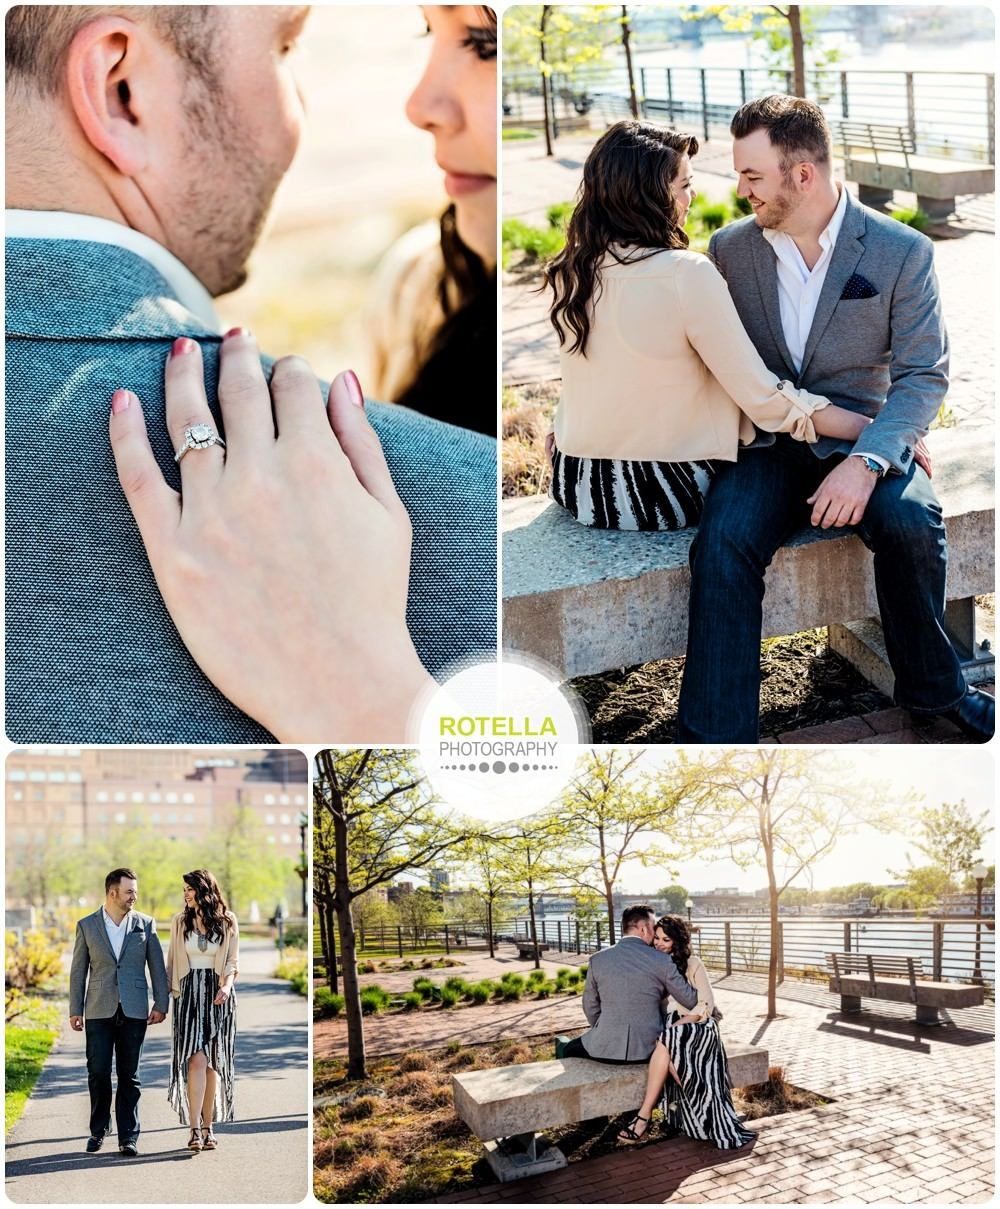 MELANIE-DEREK-MINNESOTA-ENGAGEMENT-PHOTOGRAPHY-ROTELLA-PHOTOGRAPHY_03